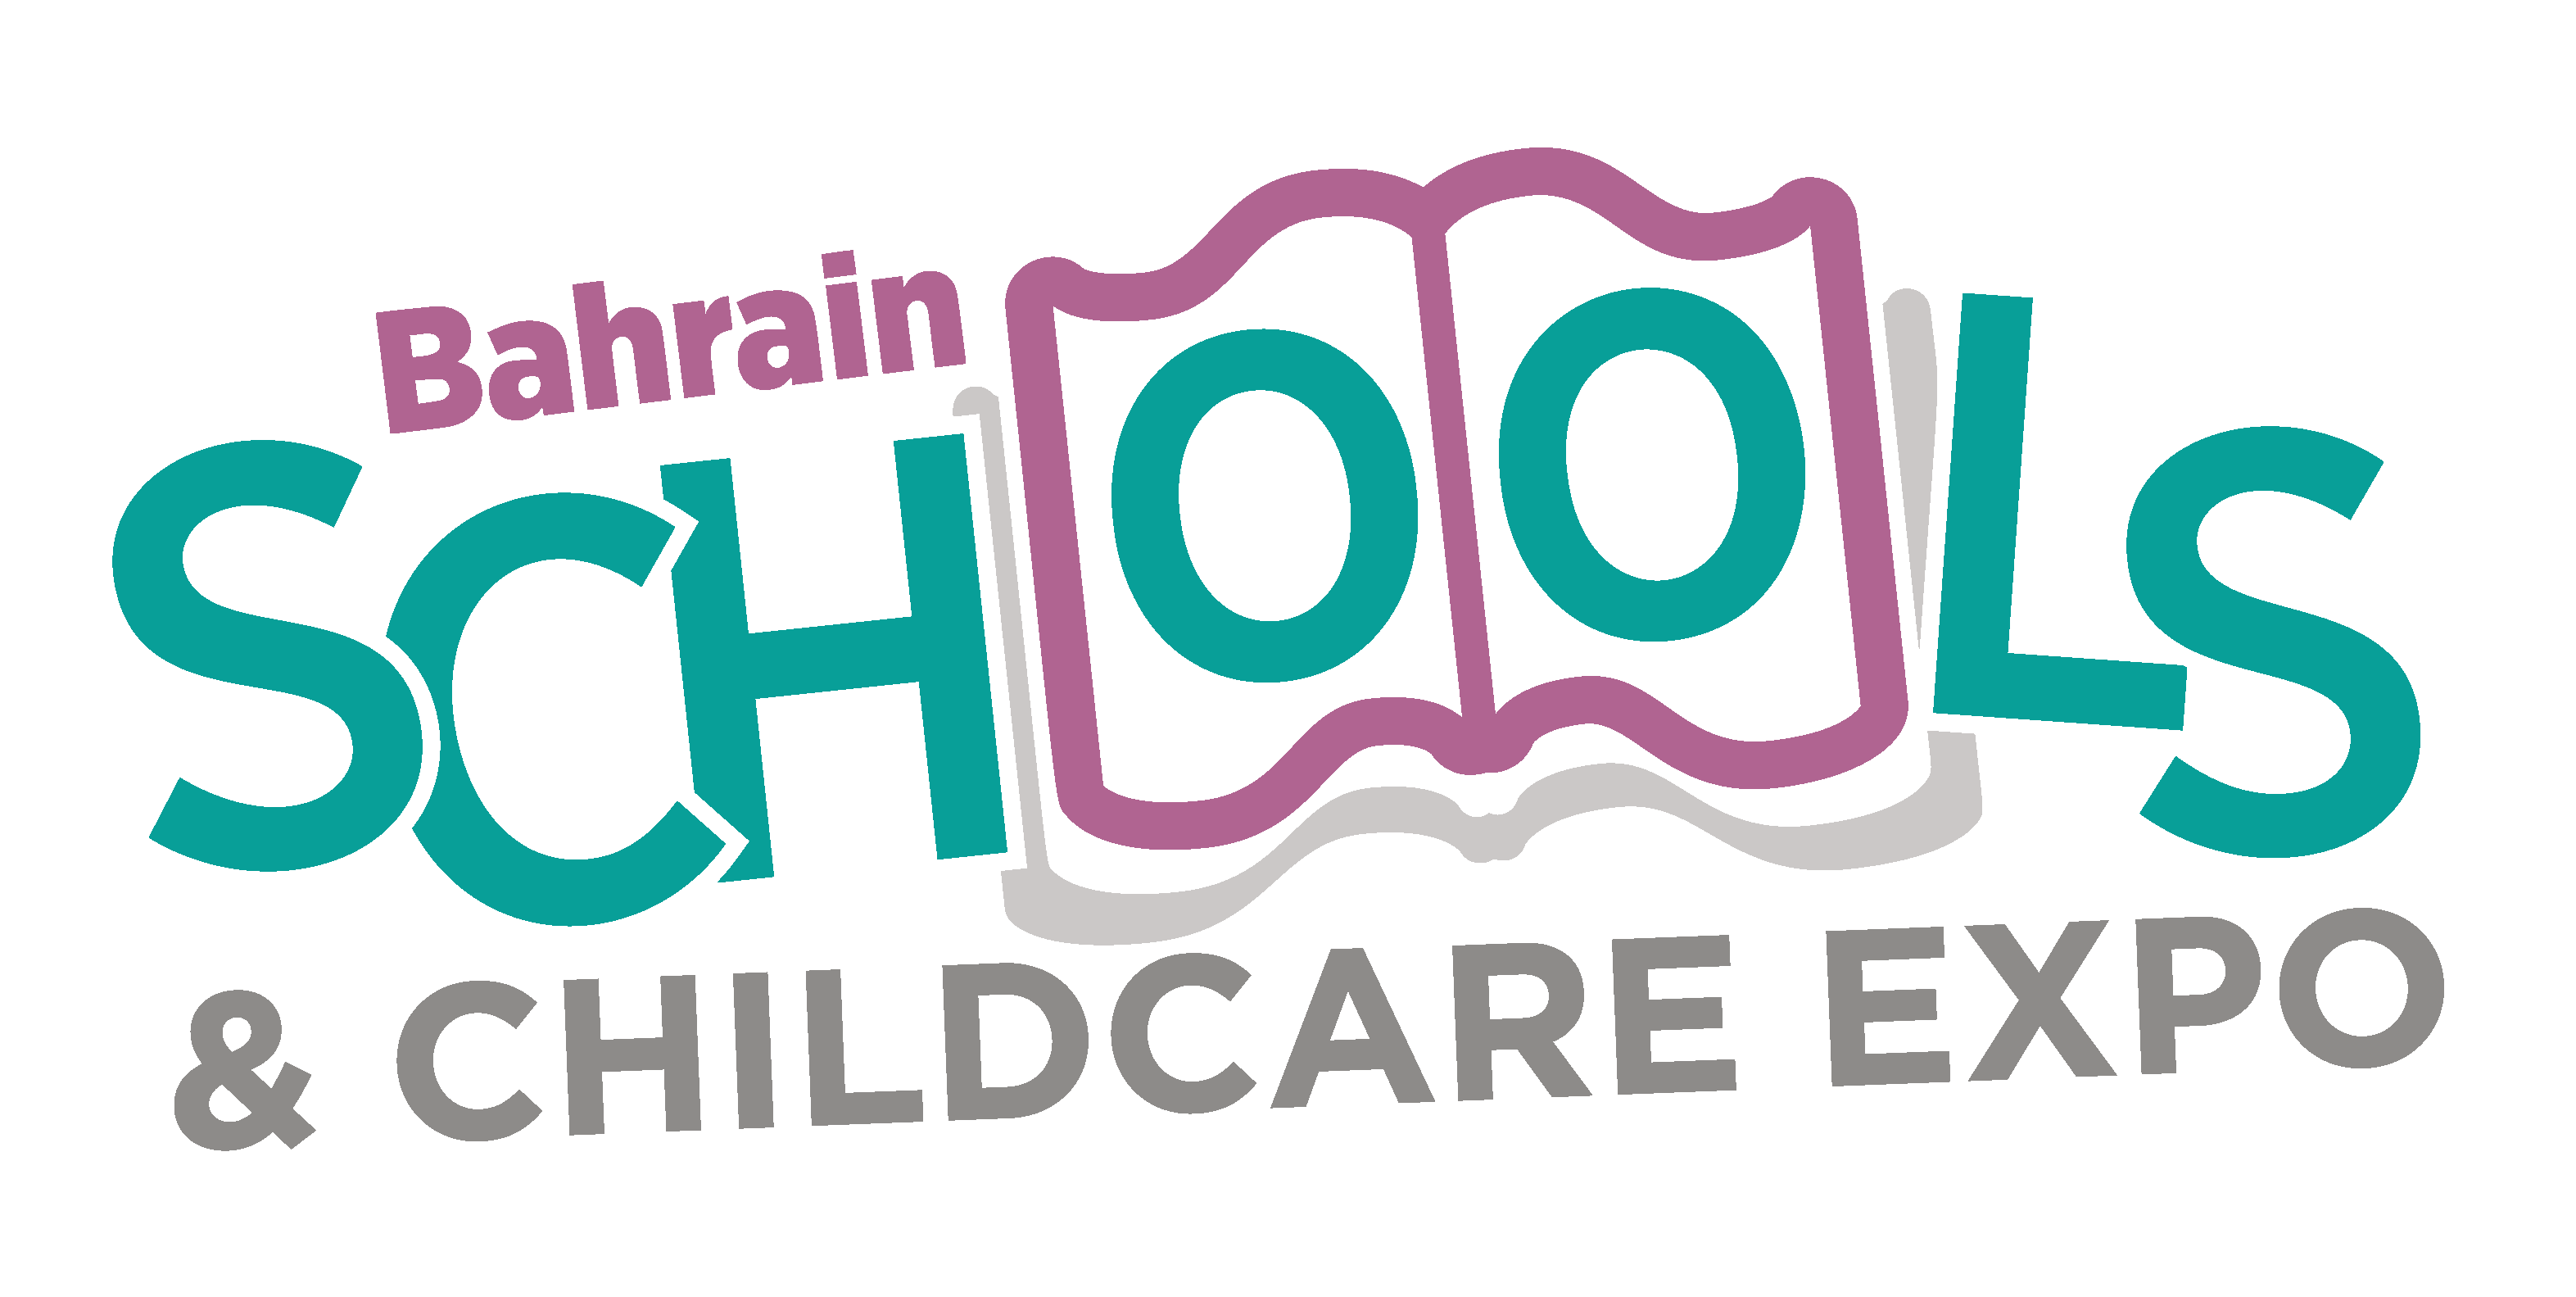 Bahrain Schools and Childcare Expo 2020